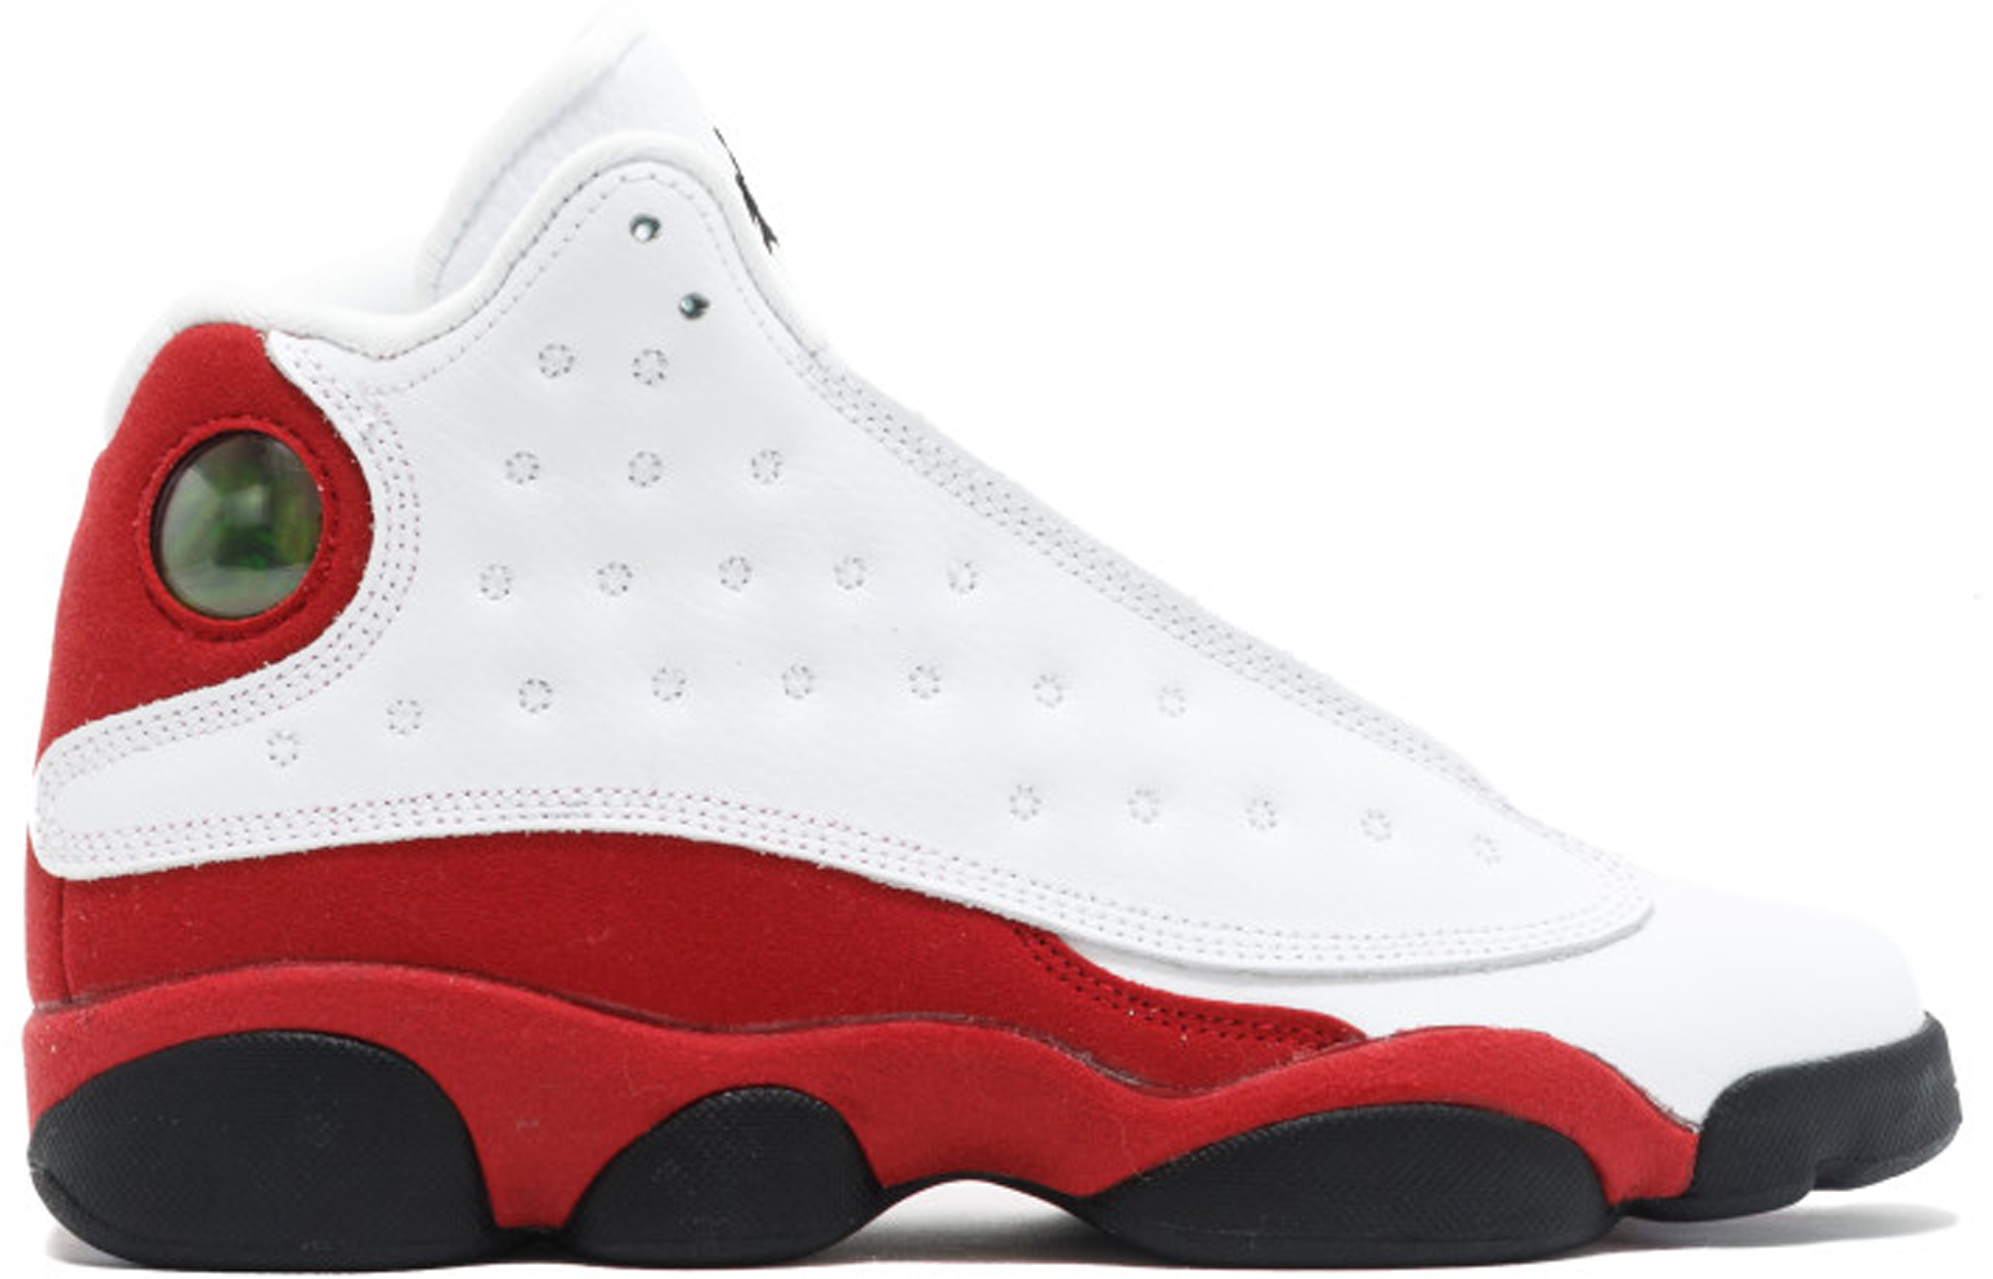 jordan 13 weiß cherry; jordan 13 retro og chicago 2017 (gs)